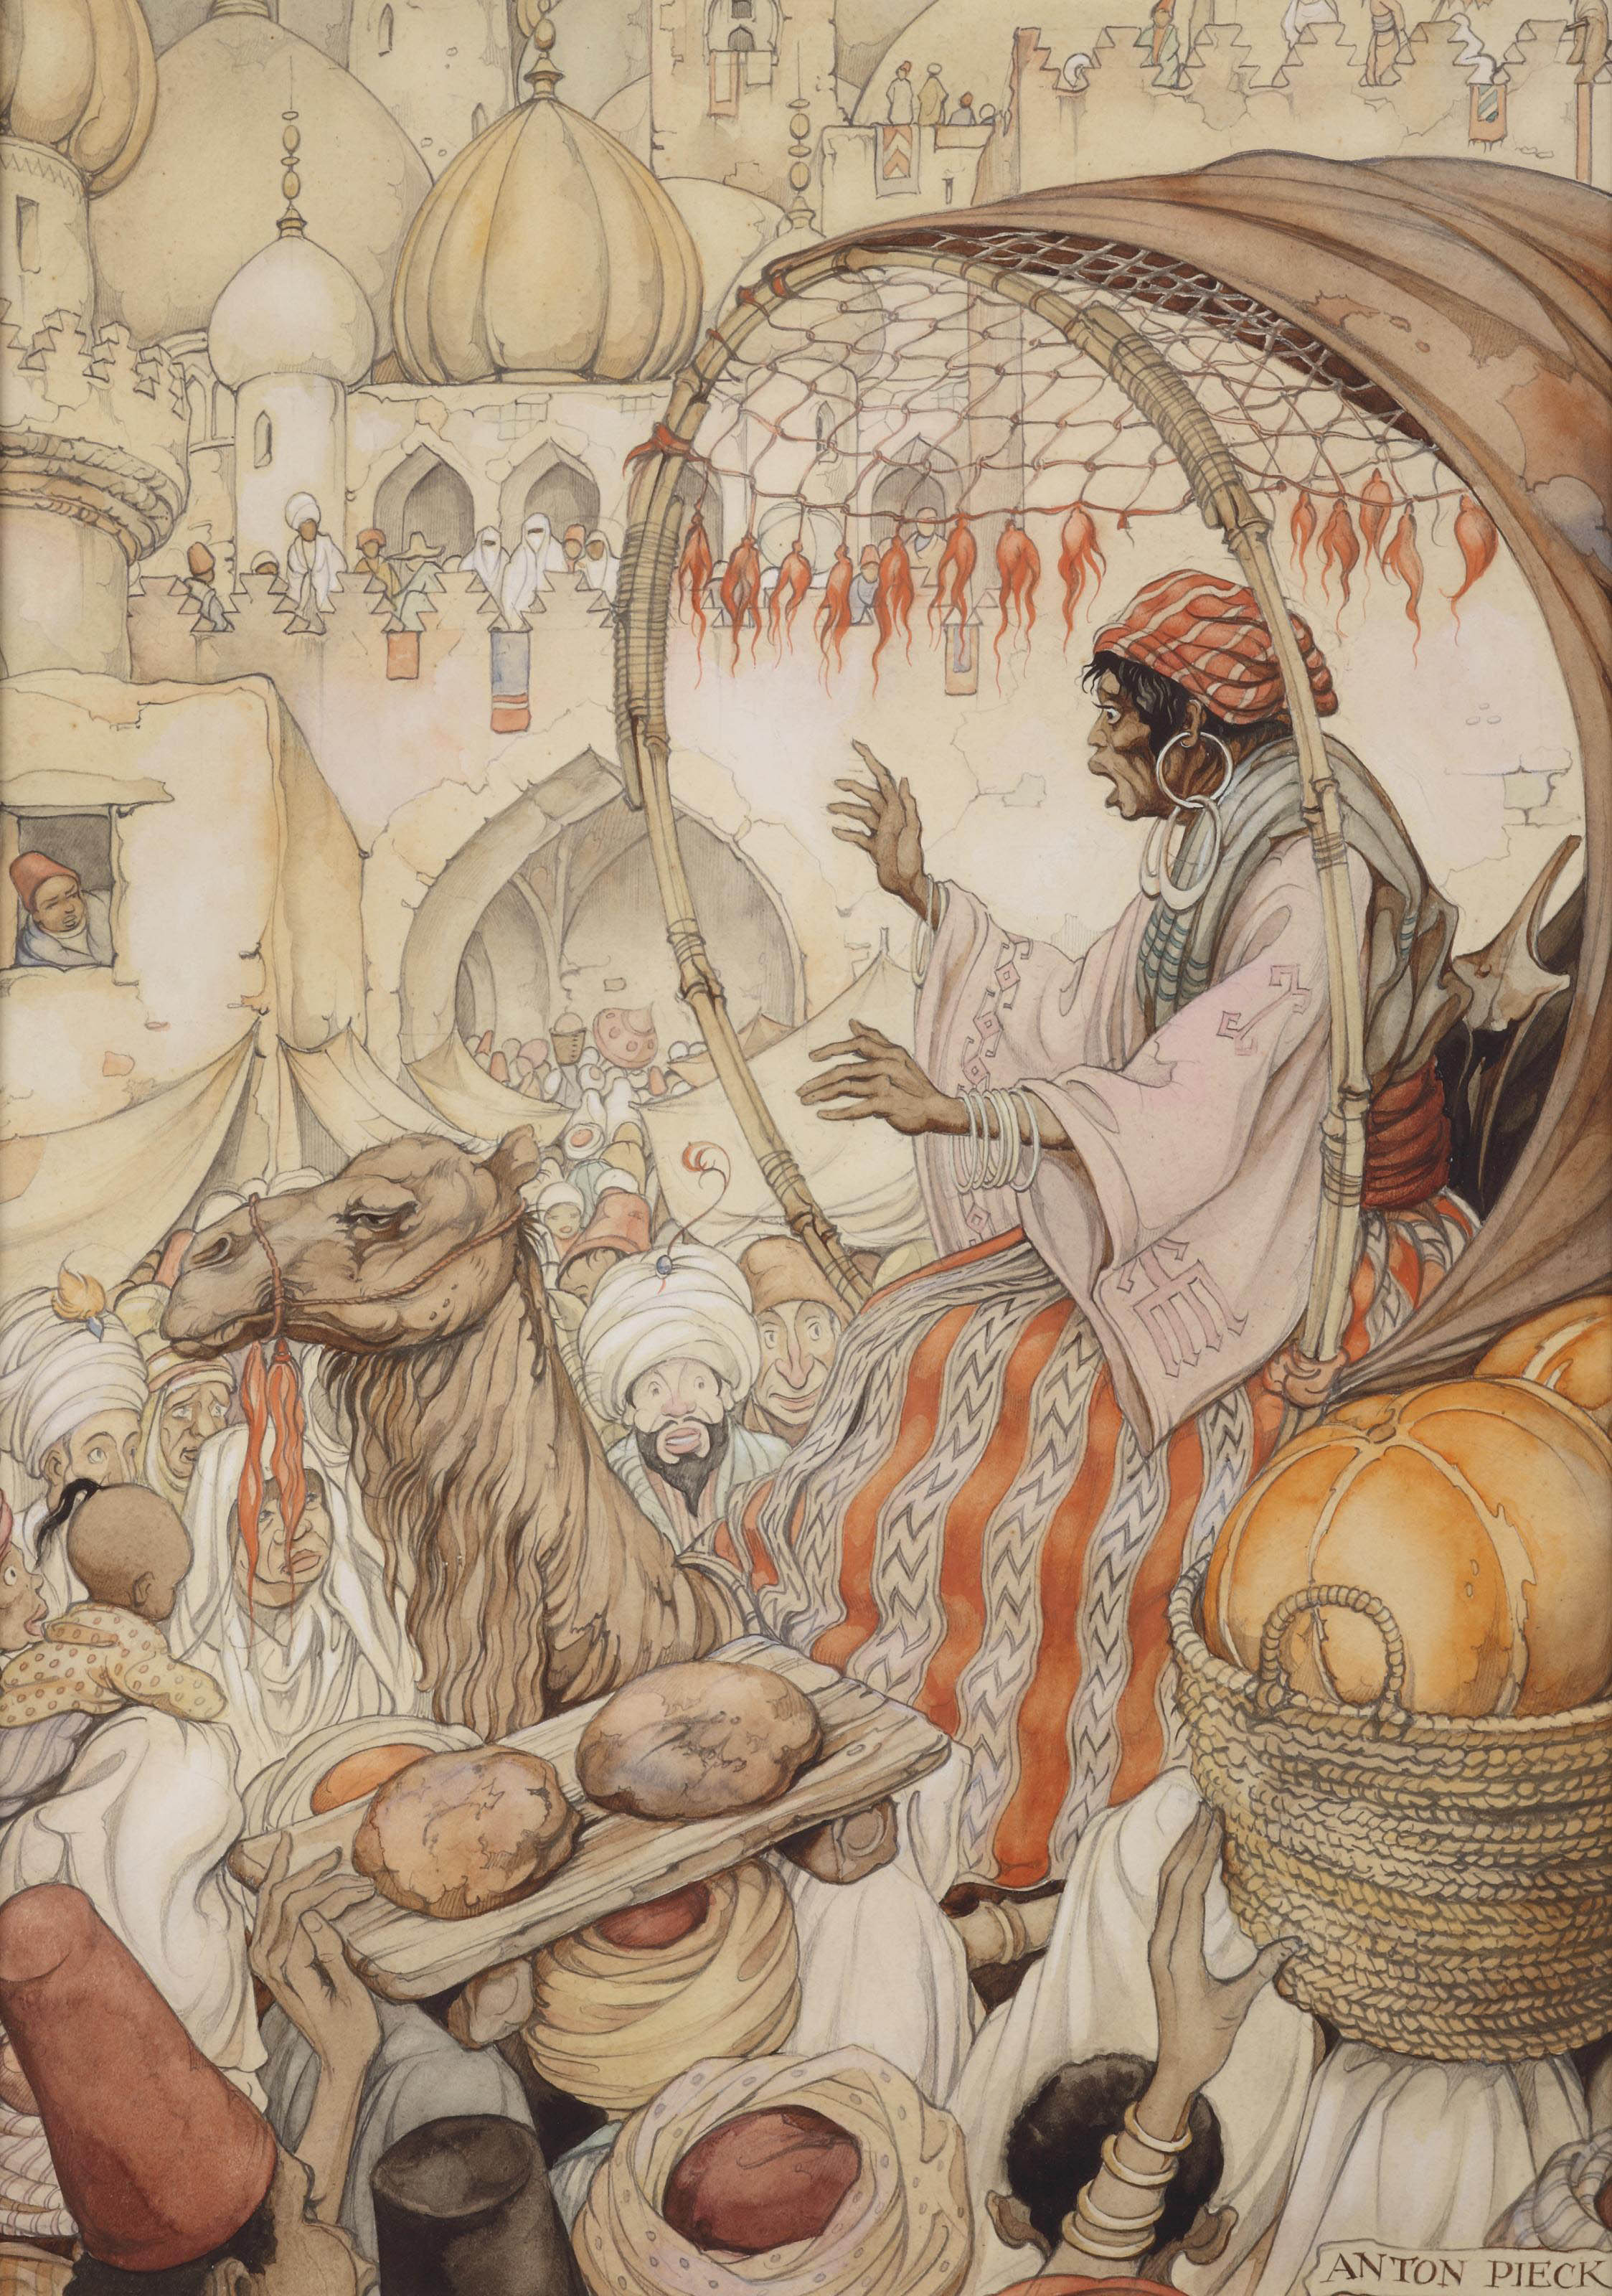 From 1001 Arabian nights; the story of The return of Kanmakan in Bagdad